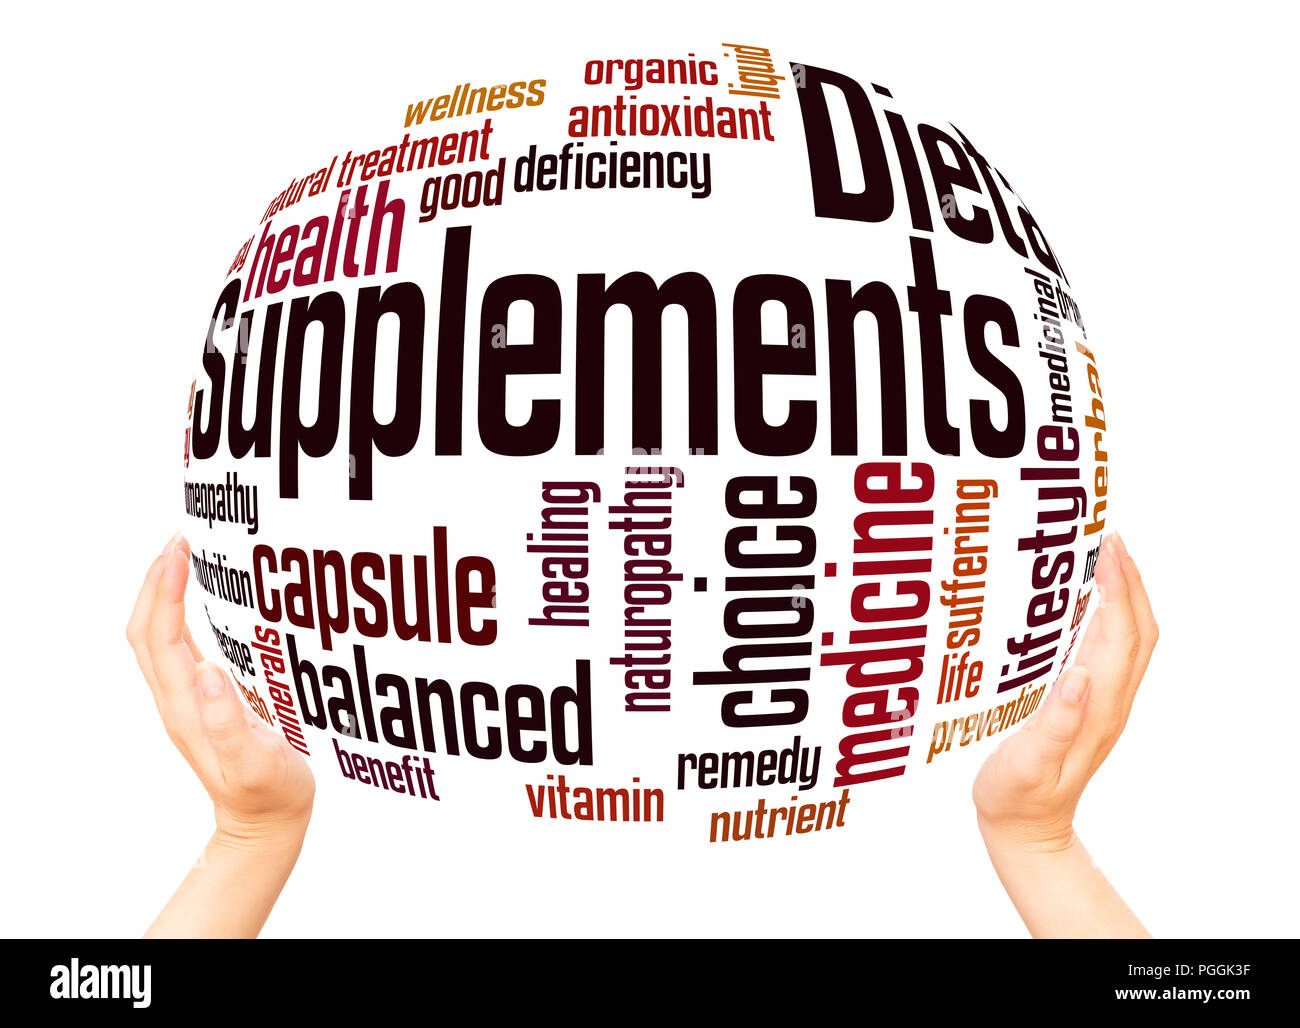 Dietary supplements word cloud sphere concept on white background. - Stock Image